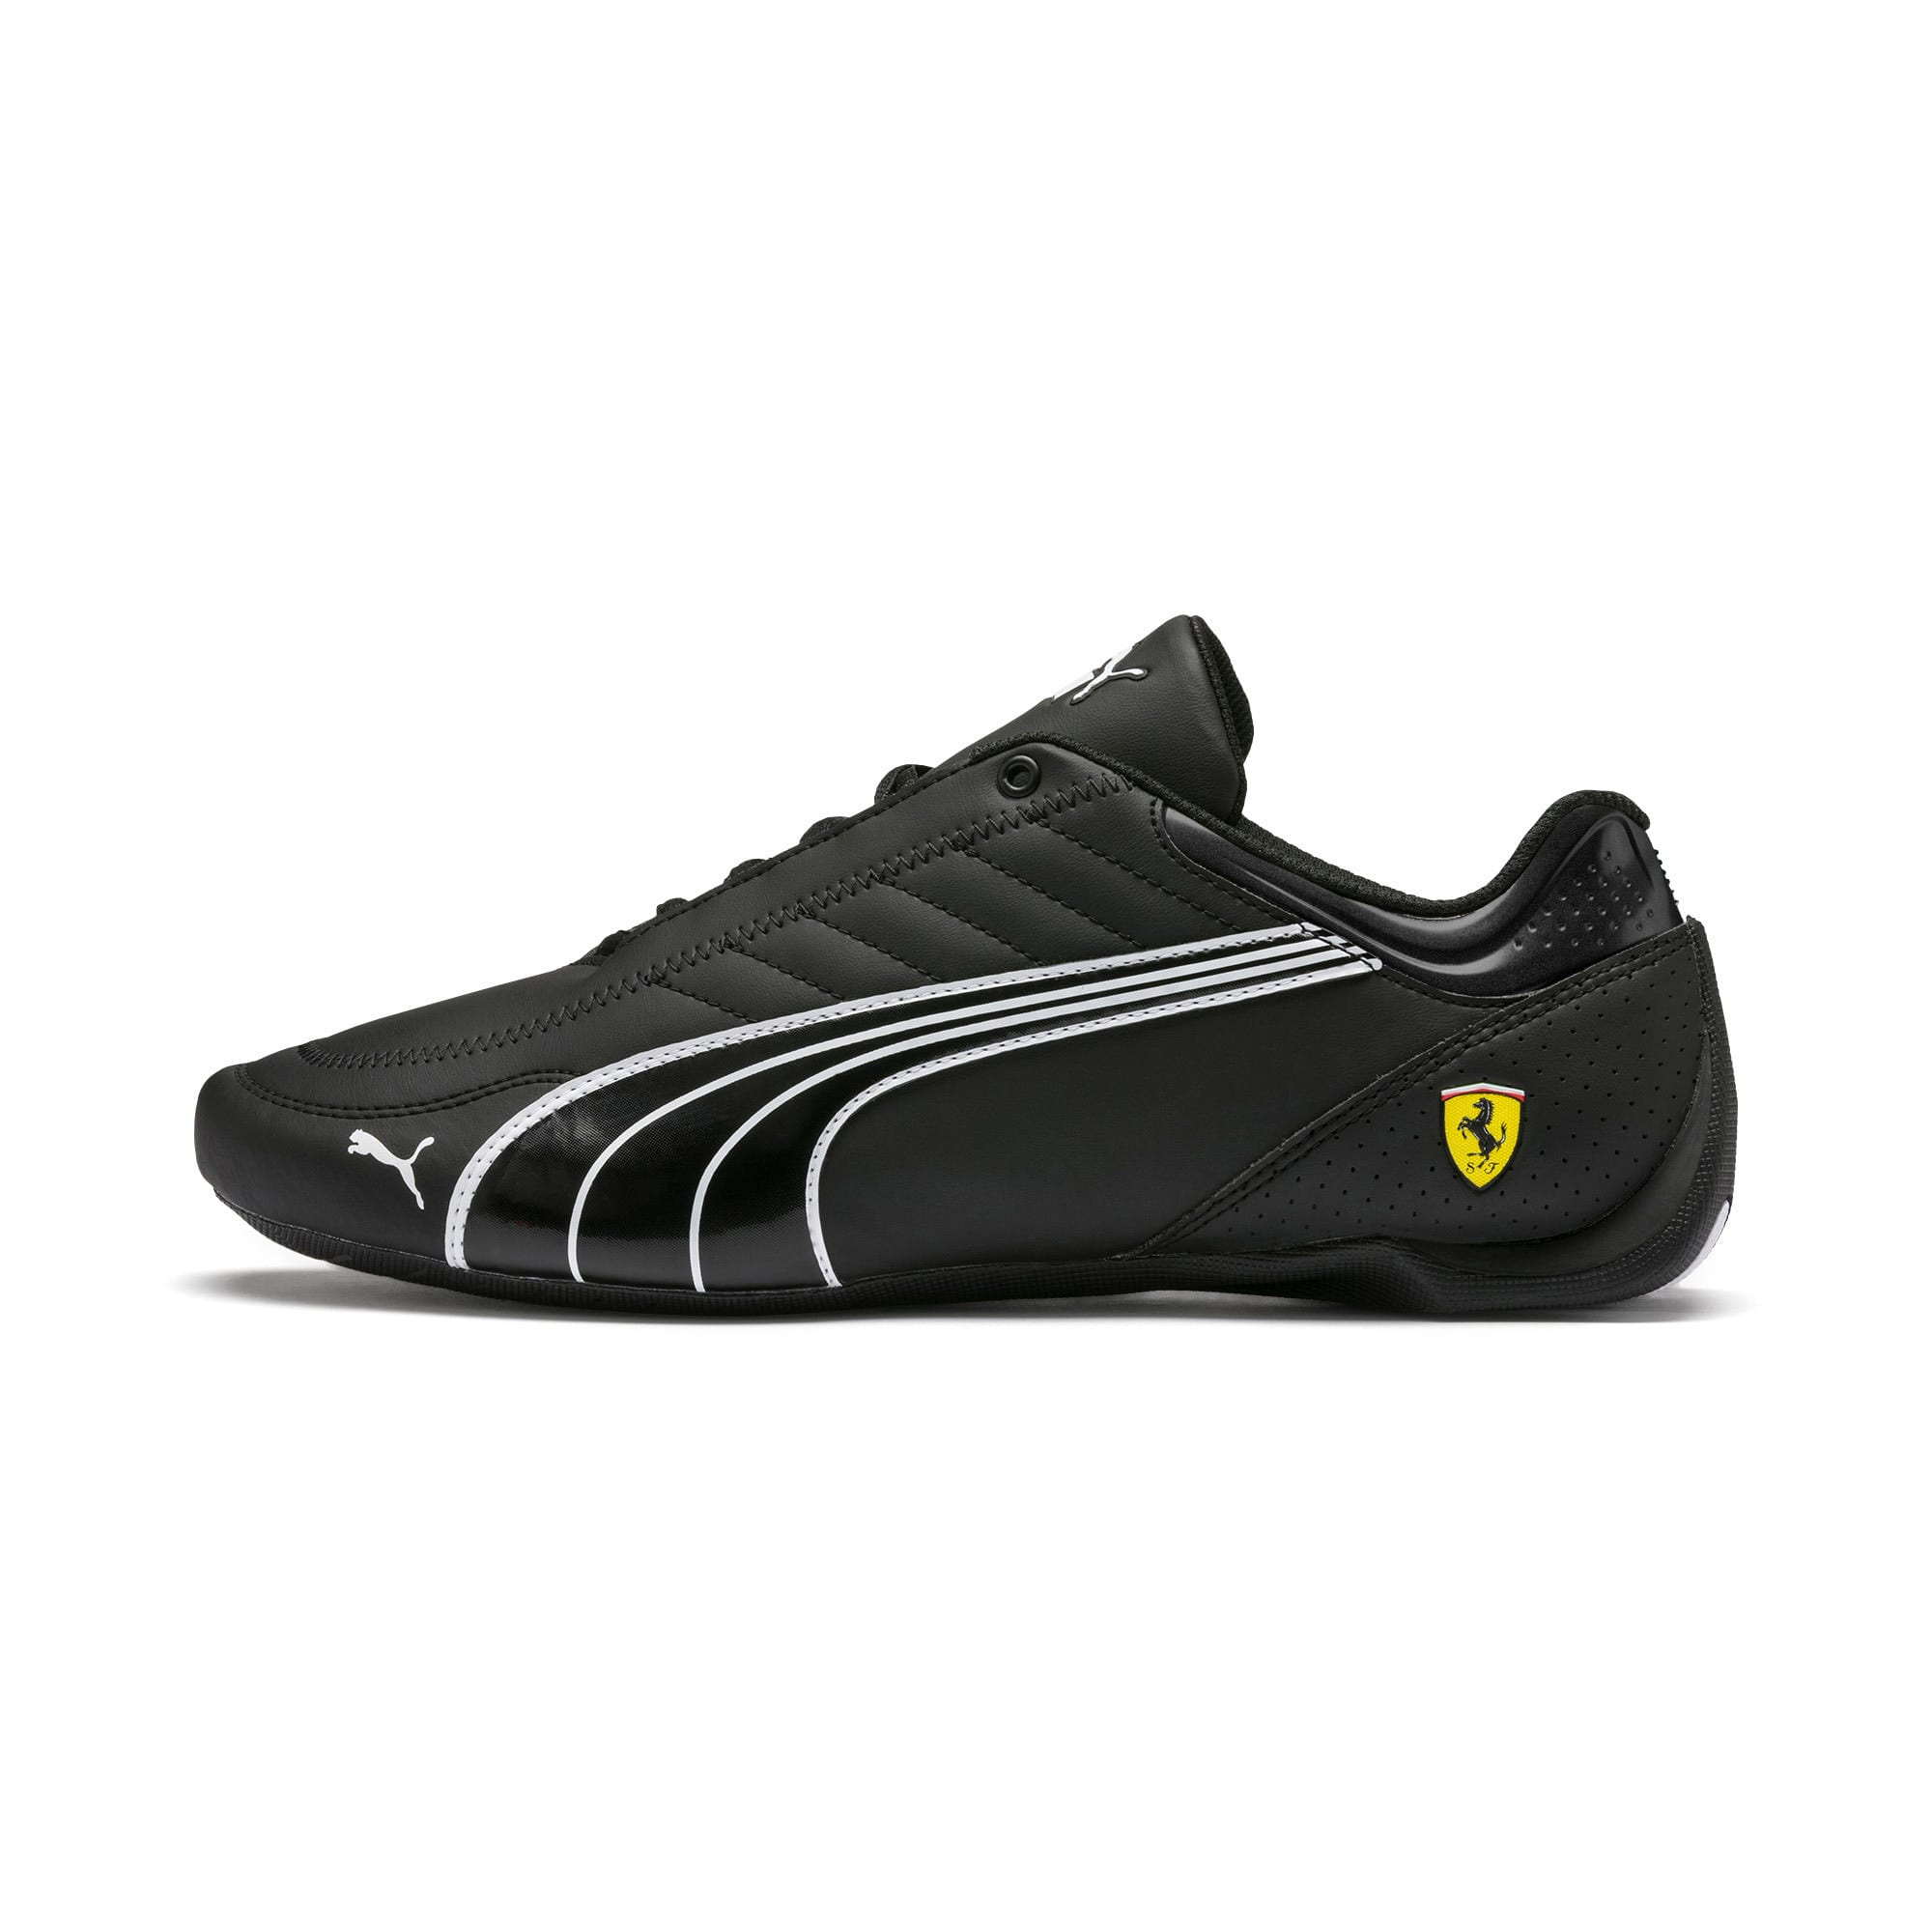 Thumbnail 1 of Basket Ferrari Future Kart Cat, Black-Puma White-Rosso Corsa, medium